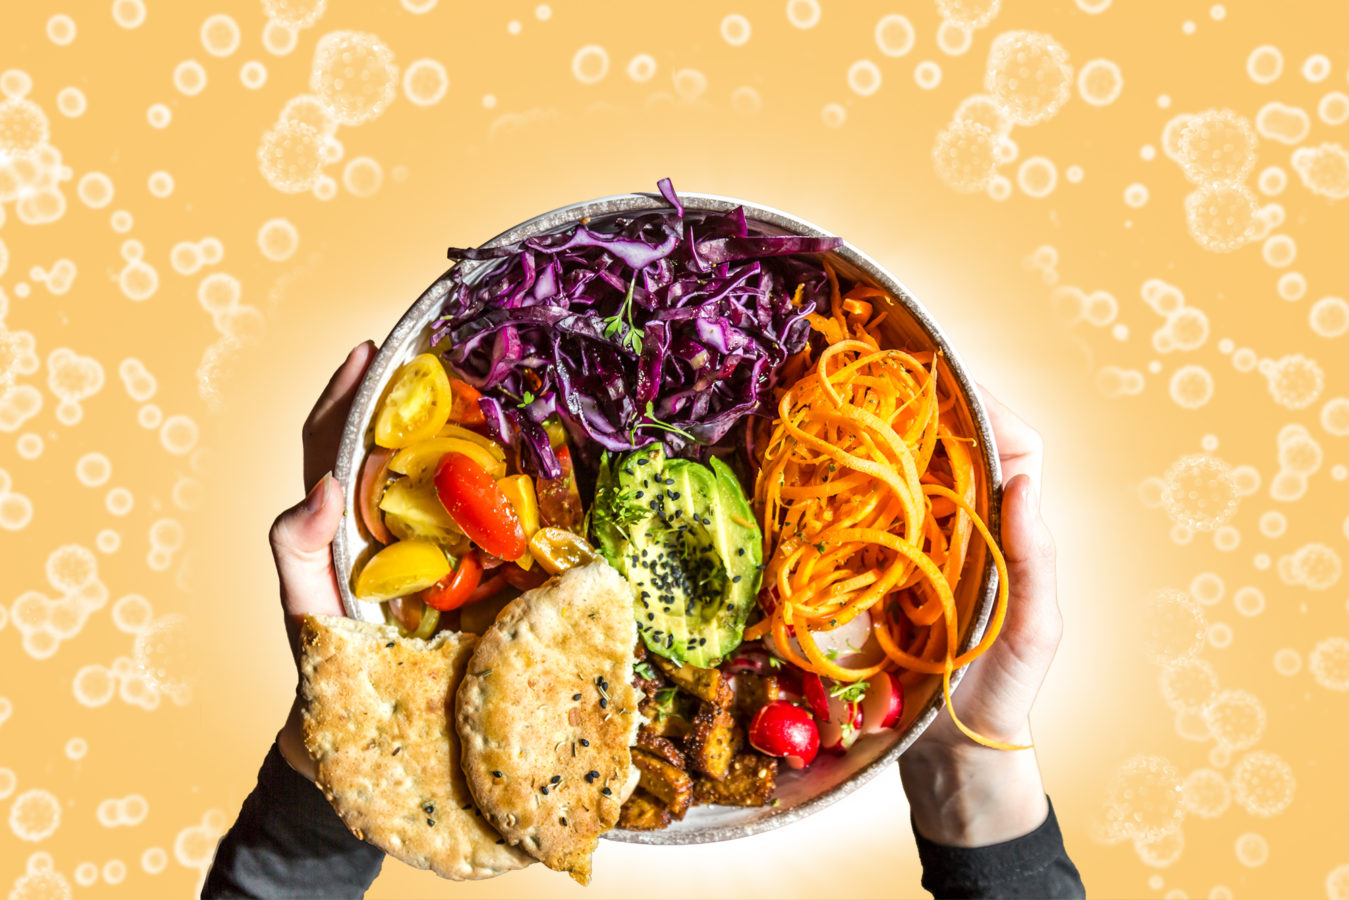 Can eating a plant-based diet lower your risk of developing severe COVID-19?